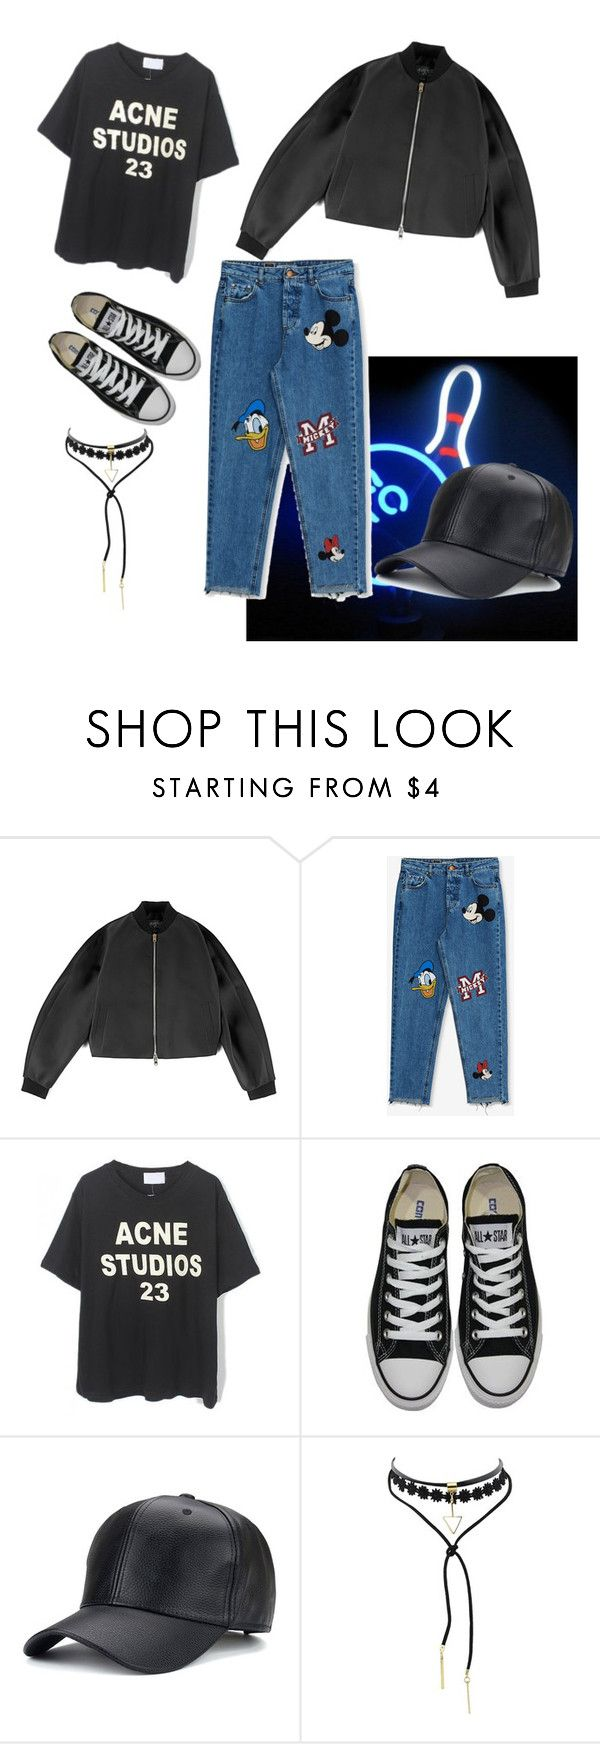 """Bowling look"" by paulagerfeld ❤ liked on Polyvore featuring Giambattista Valli, Pull&Bear, Converse, StreetStyle, outfit, ootd and women"